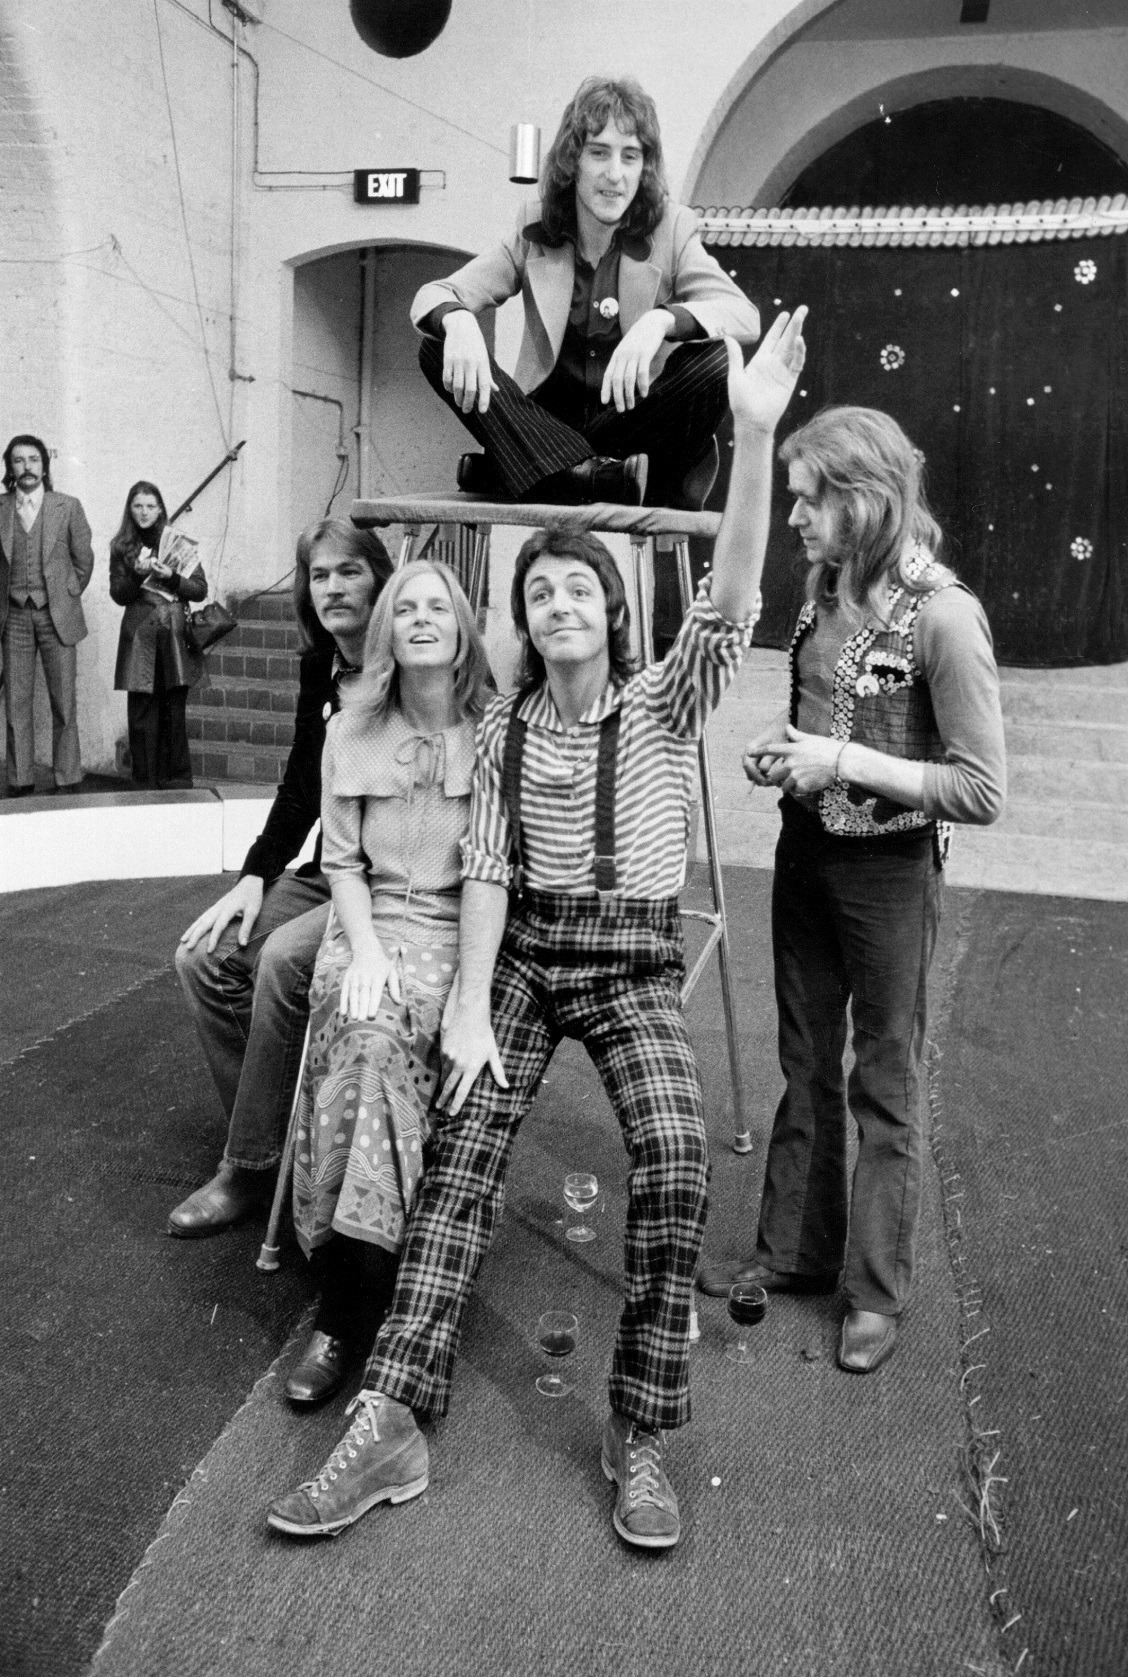 Paul McCartney with his wife Linda and their pop group Wings.